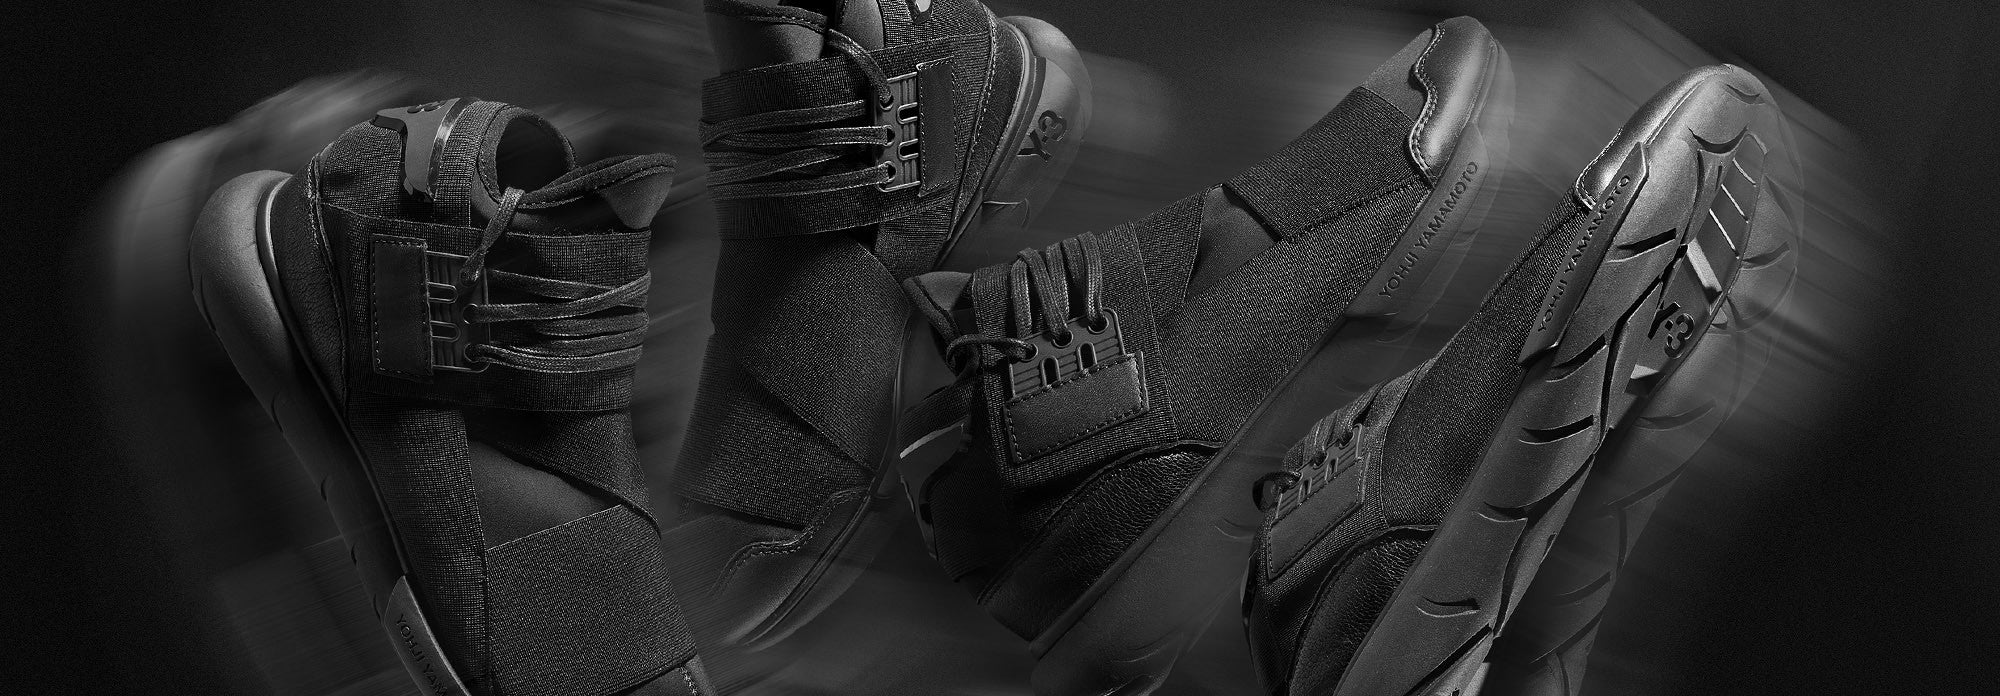 Y-3 Qasa High - An Icon Returns